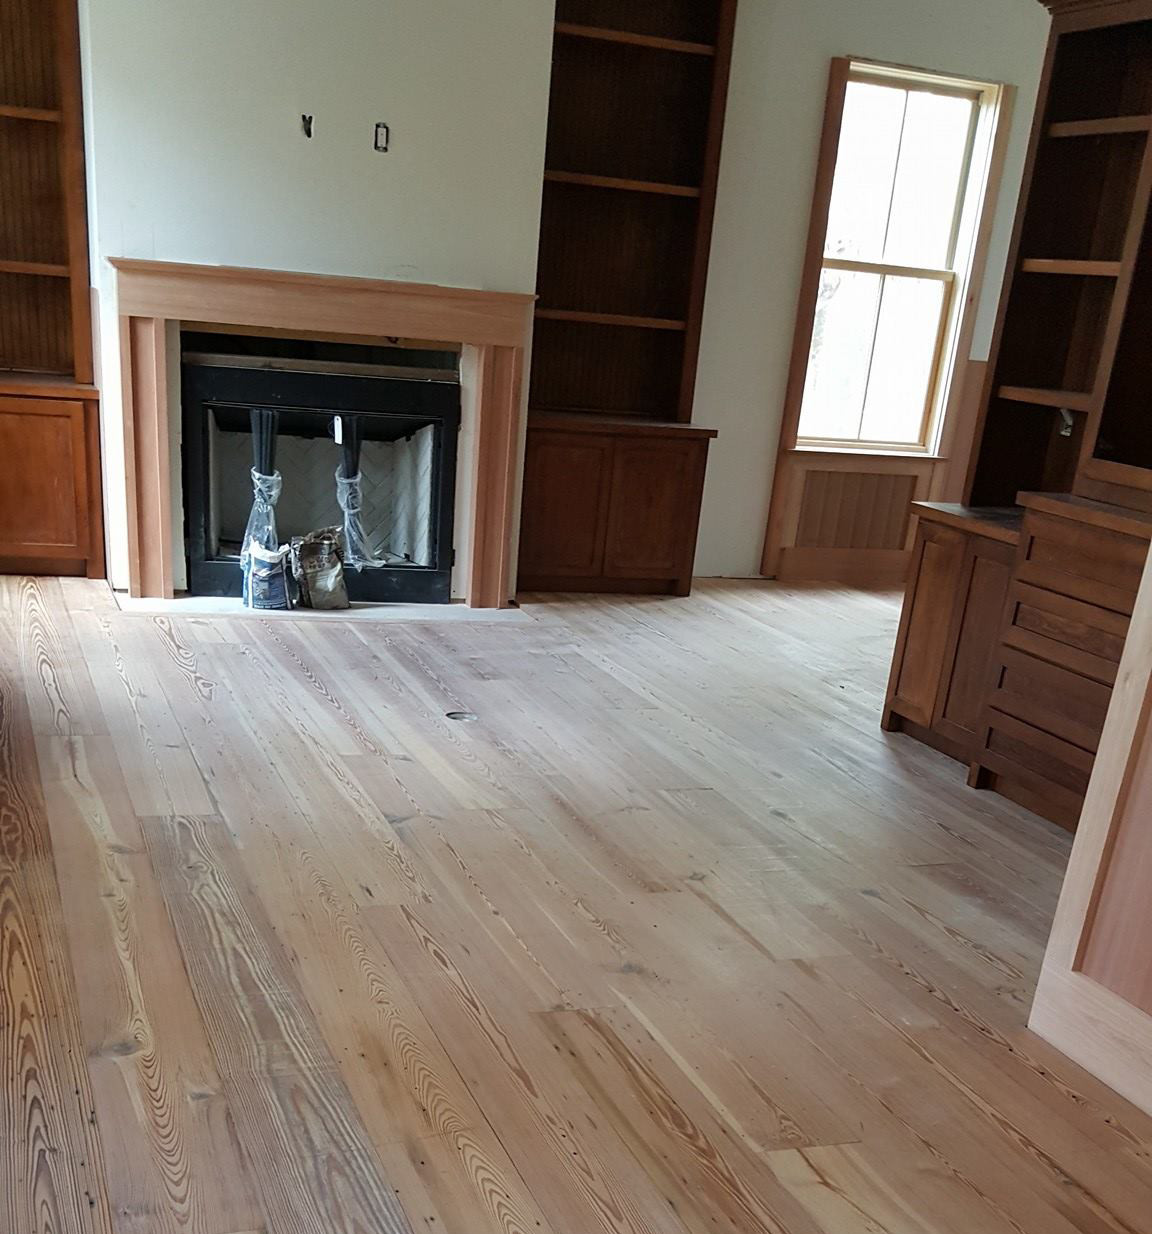 hardwood flooring prices of olde savannah hardwood flooring for sand and refinish existing floors